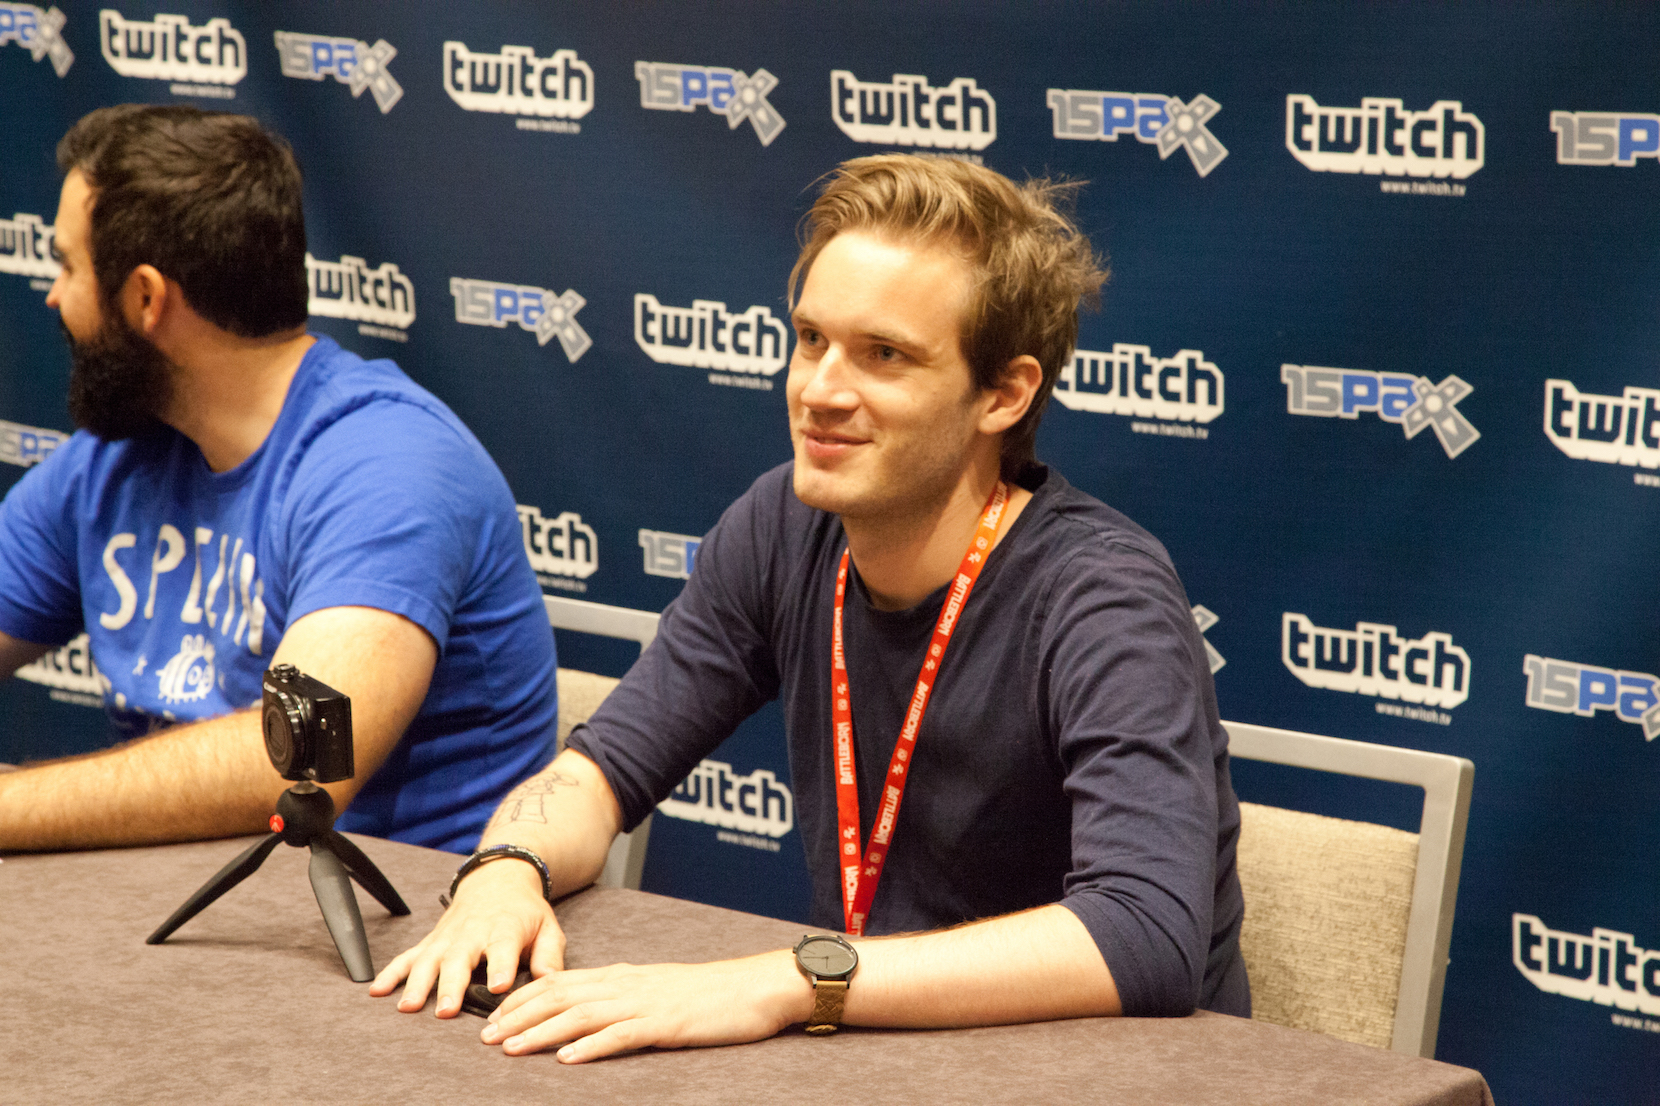 PewDiePie_at_PAX_2015